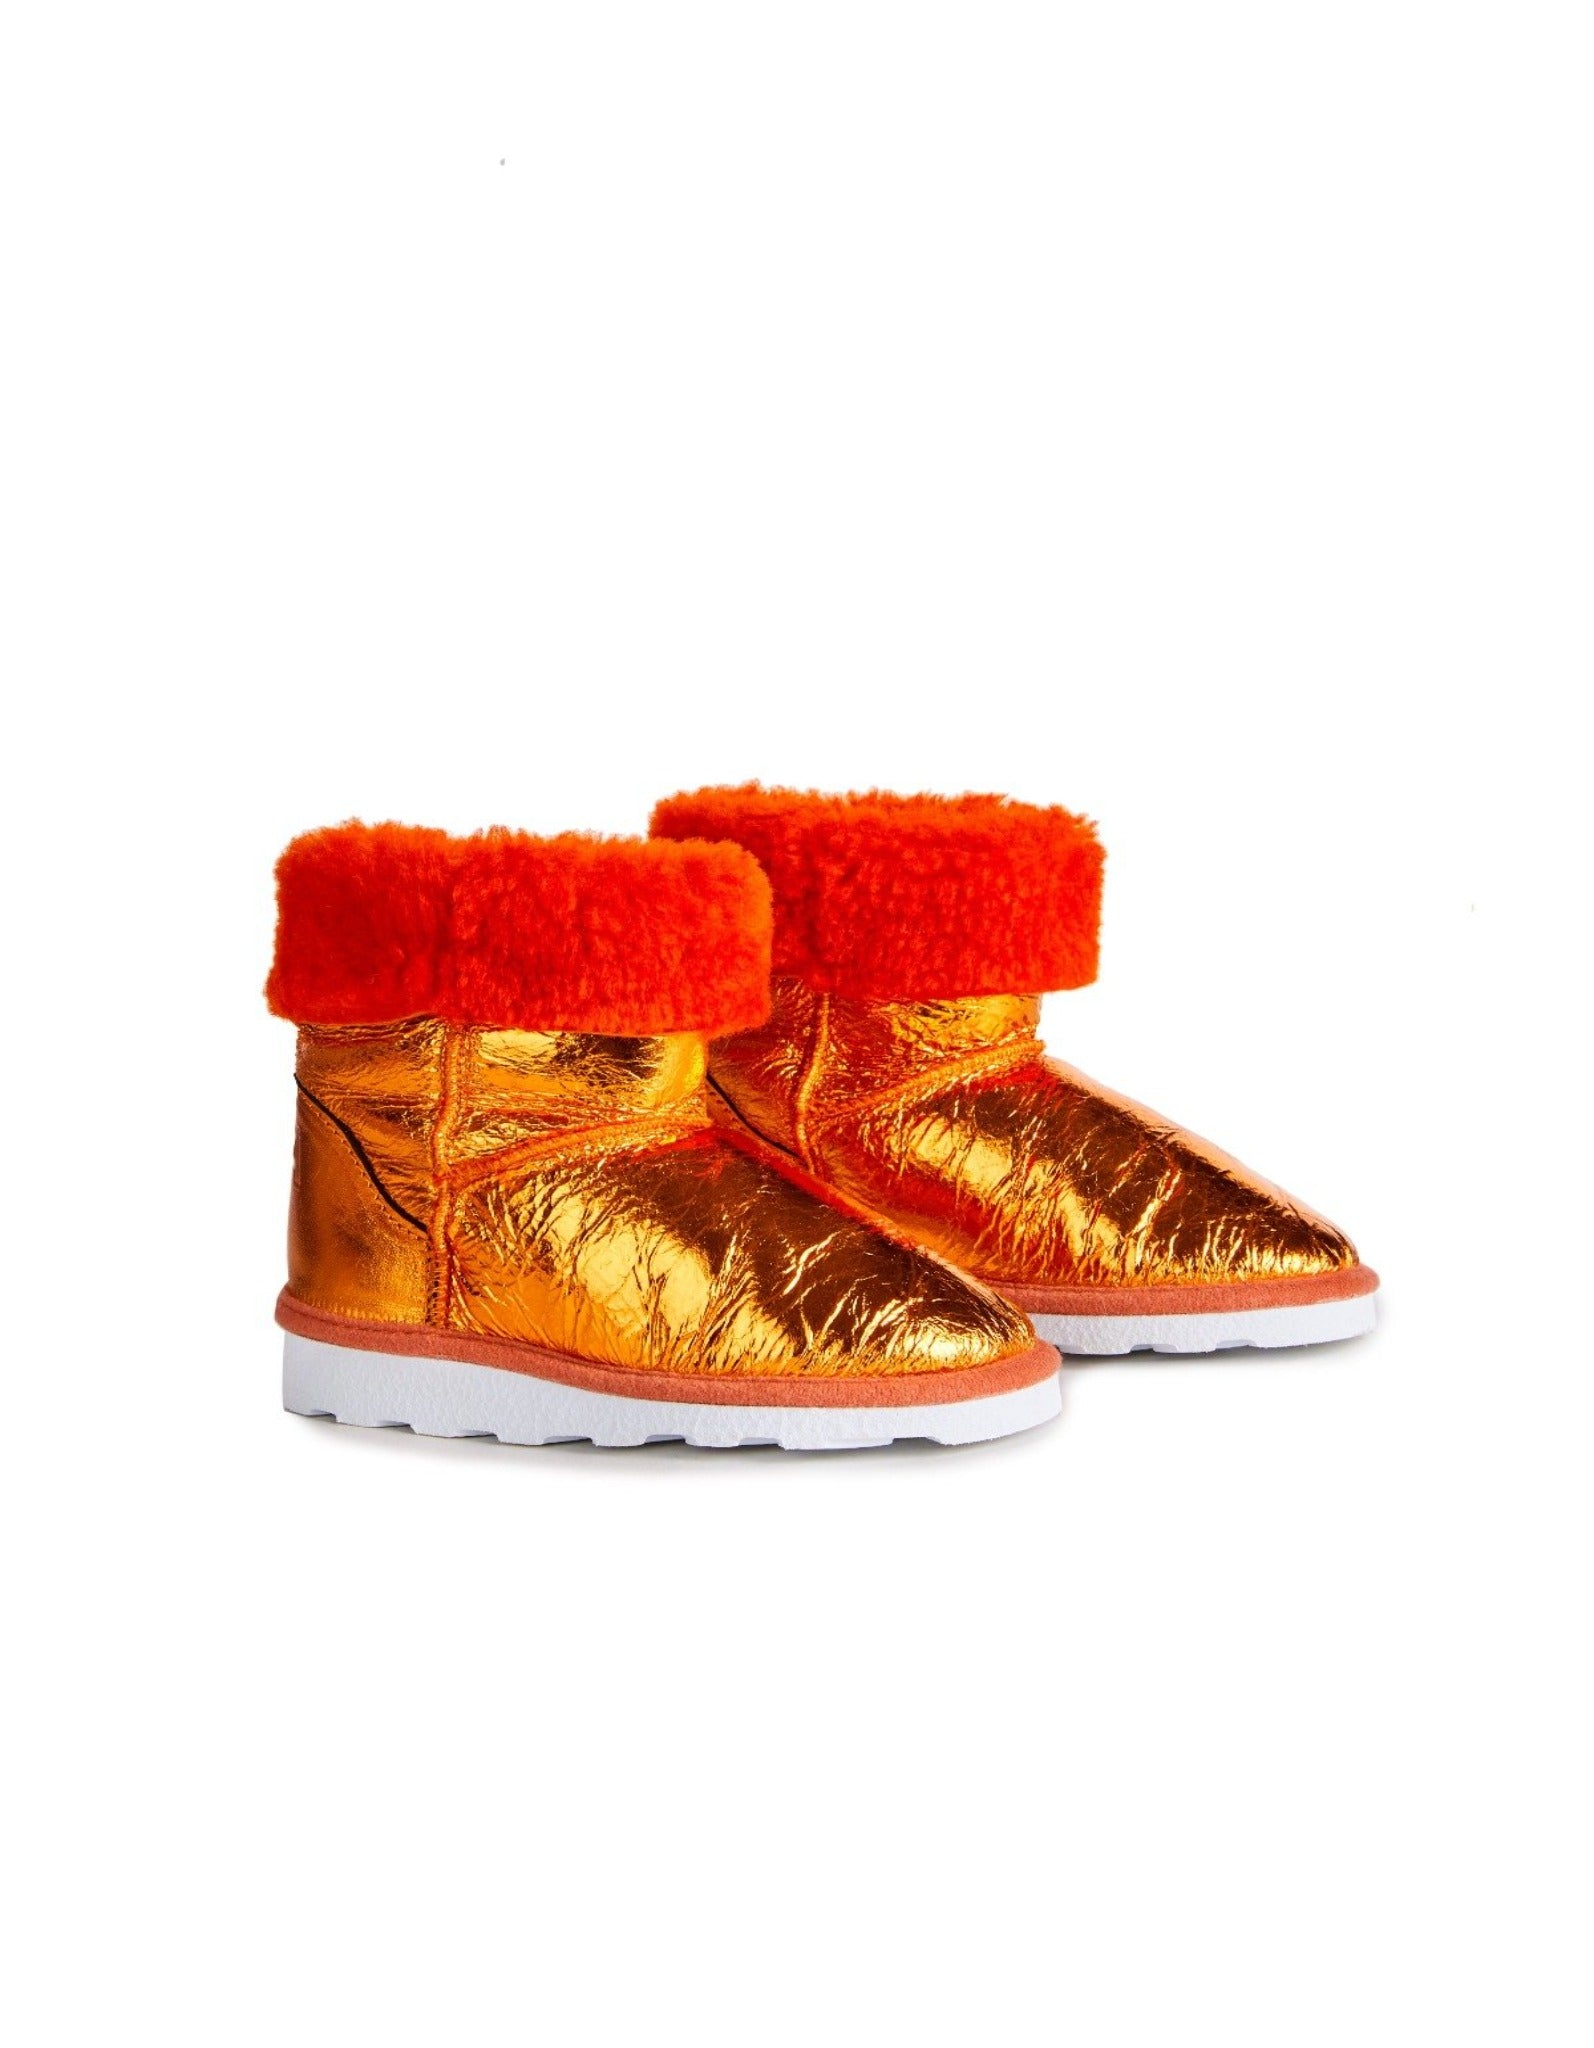 M'A KIDS LEATHER BOOTS IN ORANGE